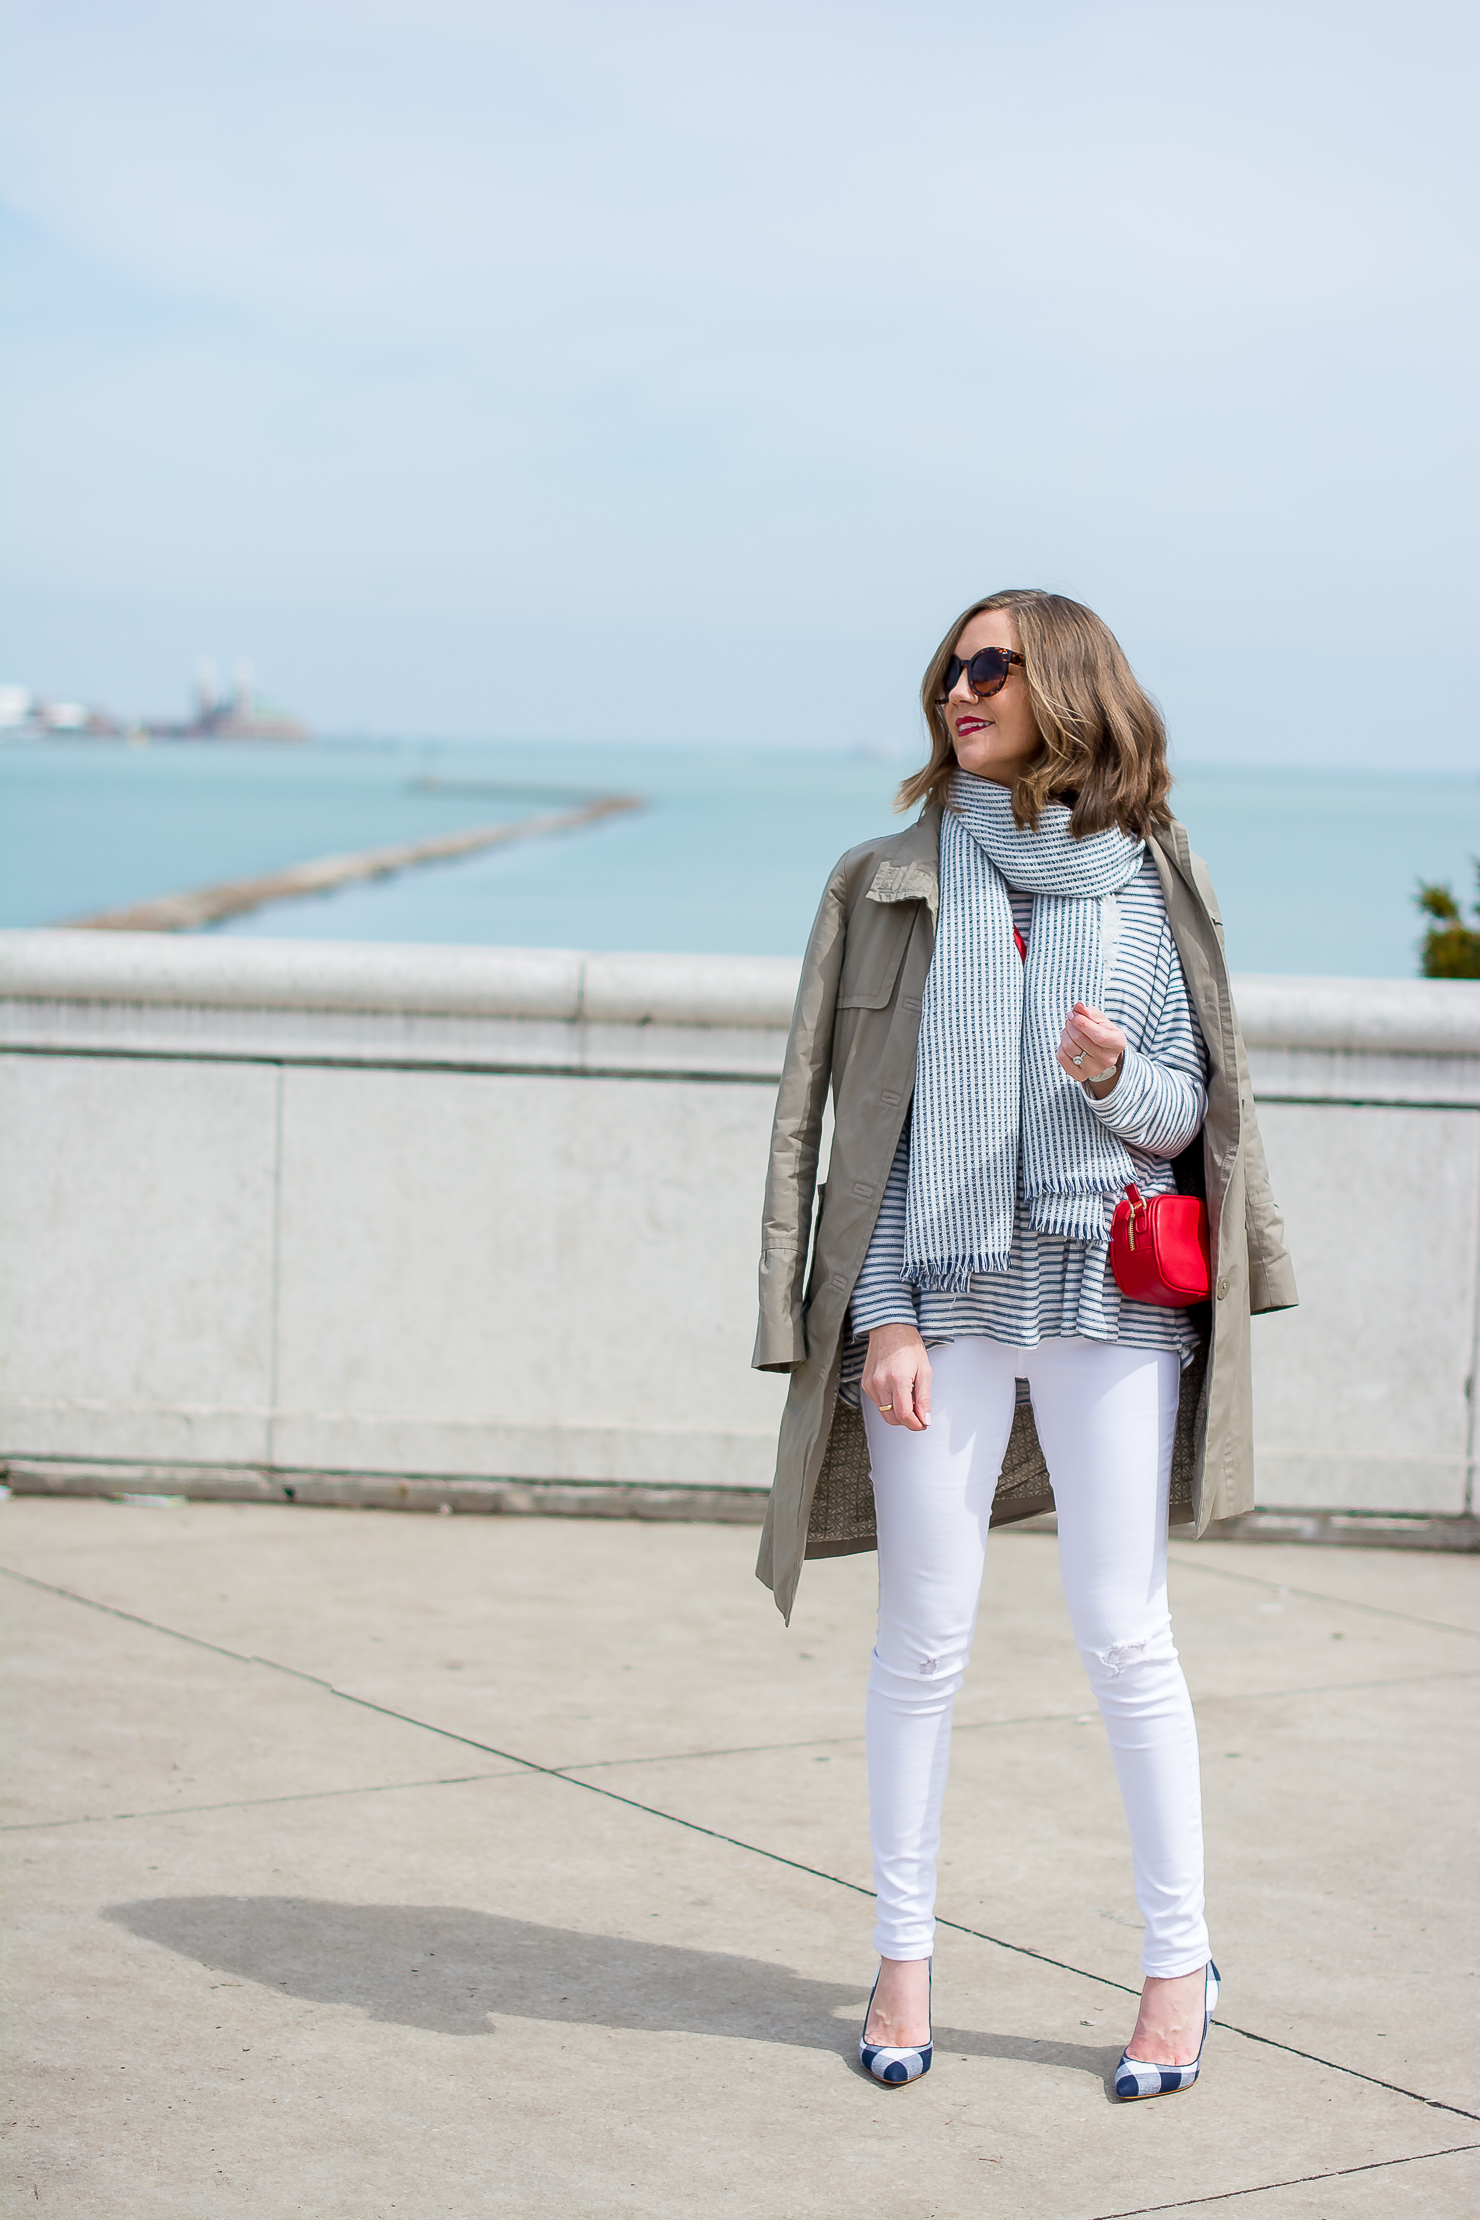 stripes-by-the-sea-chicago-shedd-aquarium-new-look-striped-peplum-sweater-forever-21-navy-striped-scarf-white-skinny-jeans-red-crossbody-gucci-dupe-ann-taylor-gingham-heels updated-12